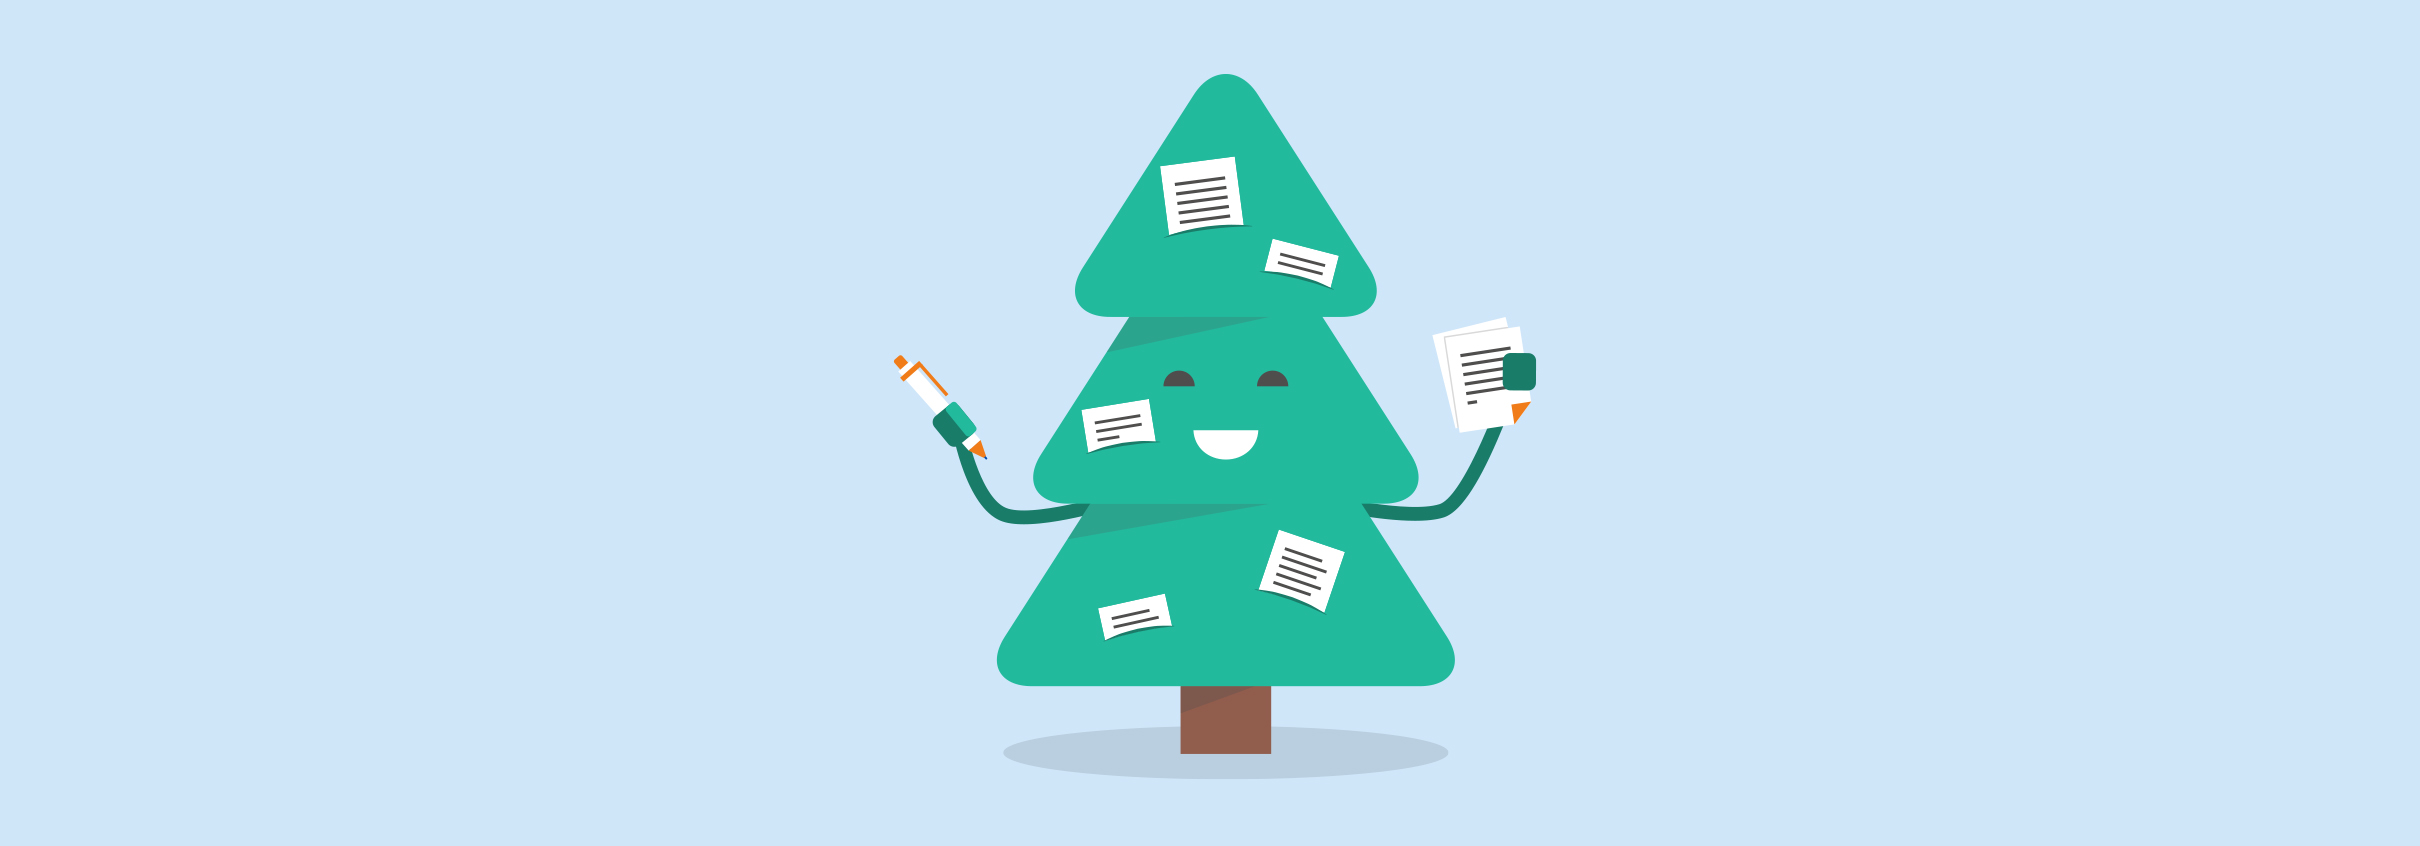 How to Build Evergreen Content That Actually Builds Your Brand: 5+ Tips, Tricks and Methods to Get Started Today